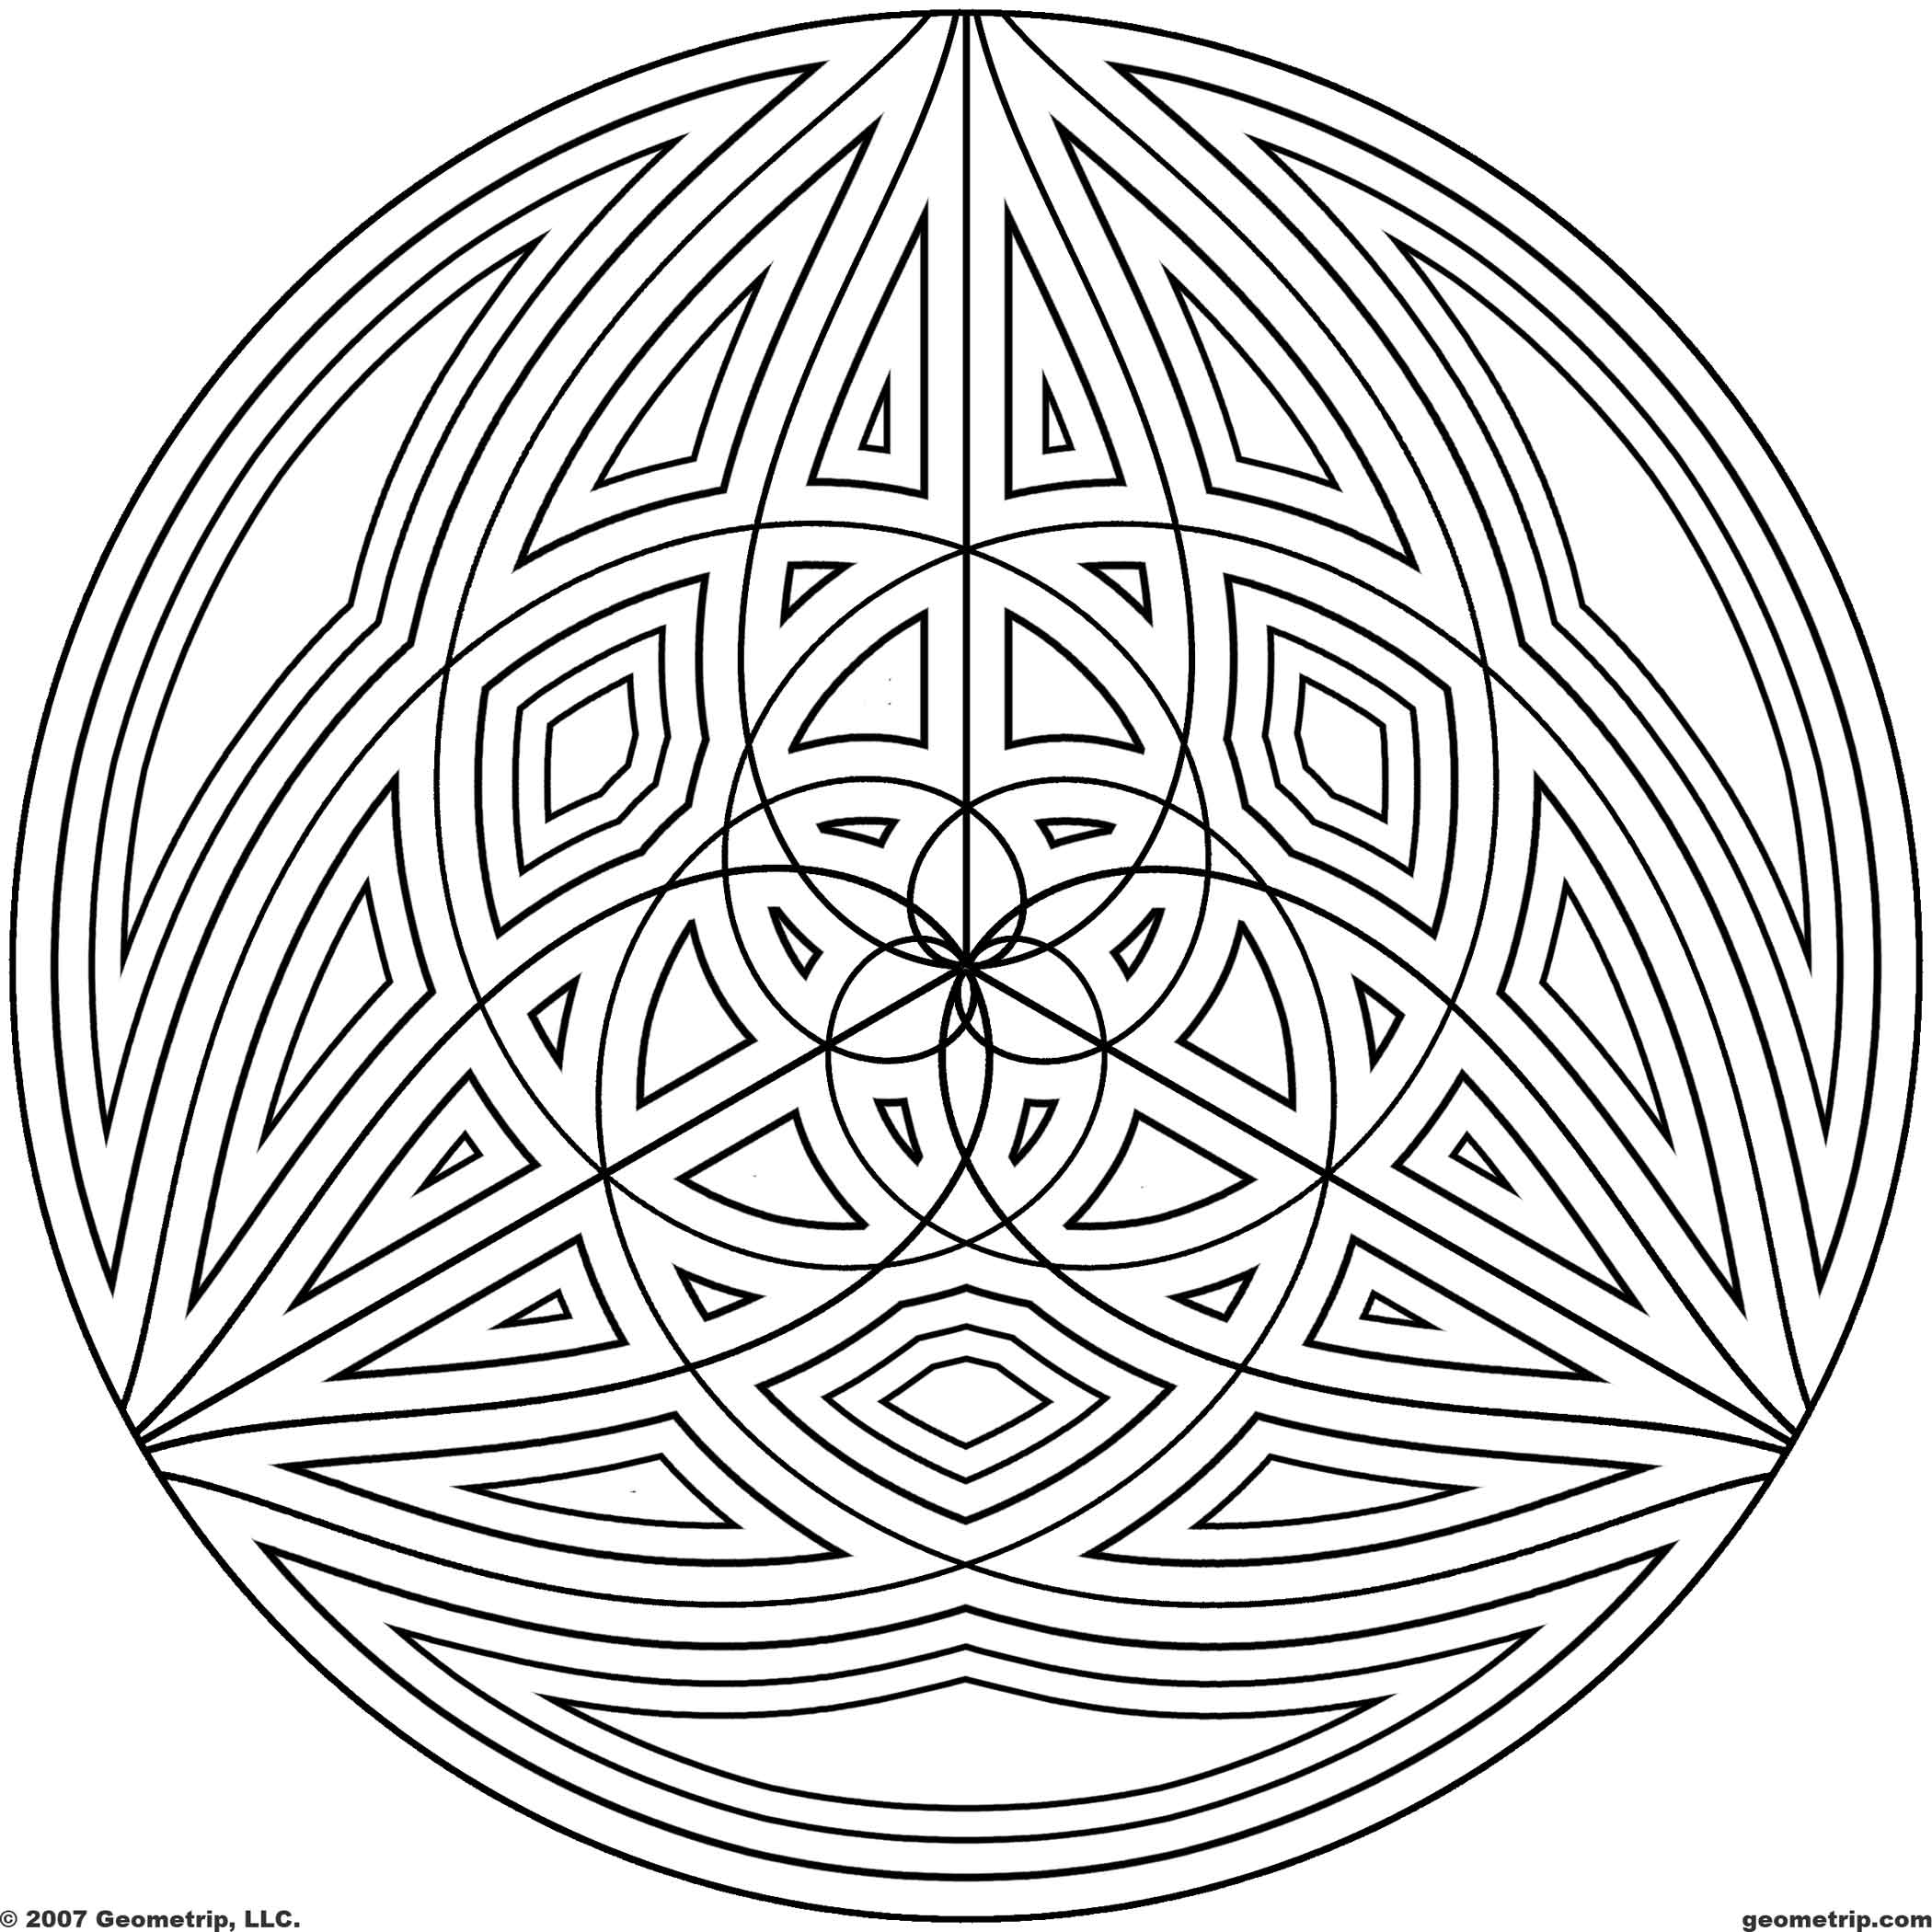 designs for coloring designs for coloring for designs coloring